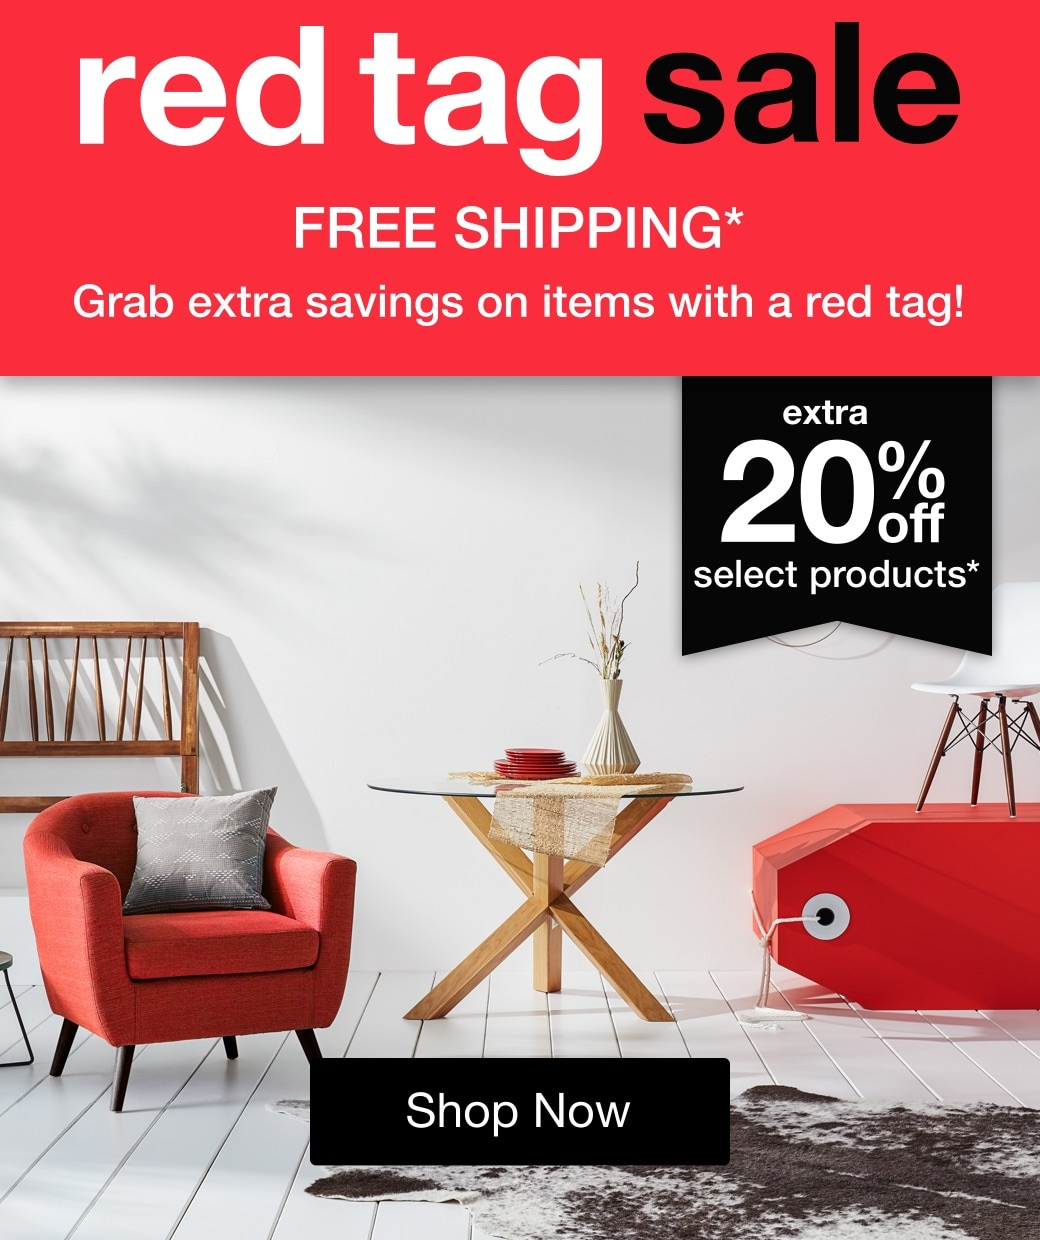 The Red Tag Sale mobile